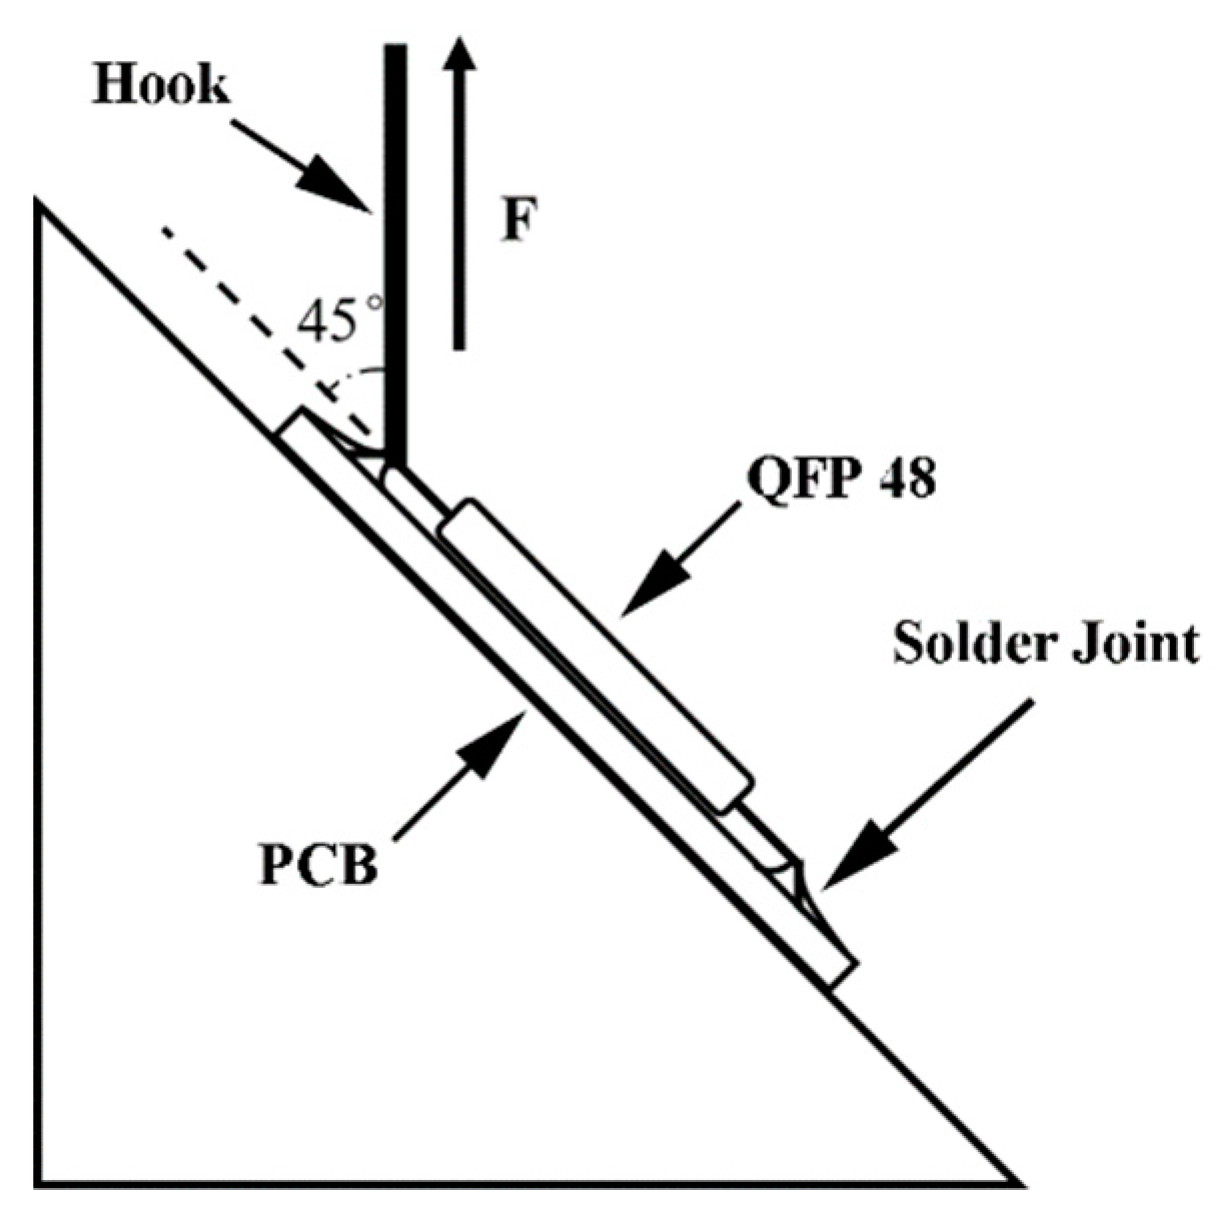 Applied Sciences Free Full Text Study On The Reliability Of Printed Circuit Board Shot From Above And Radiation Warning Sign Applsci 08 01706 G001